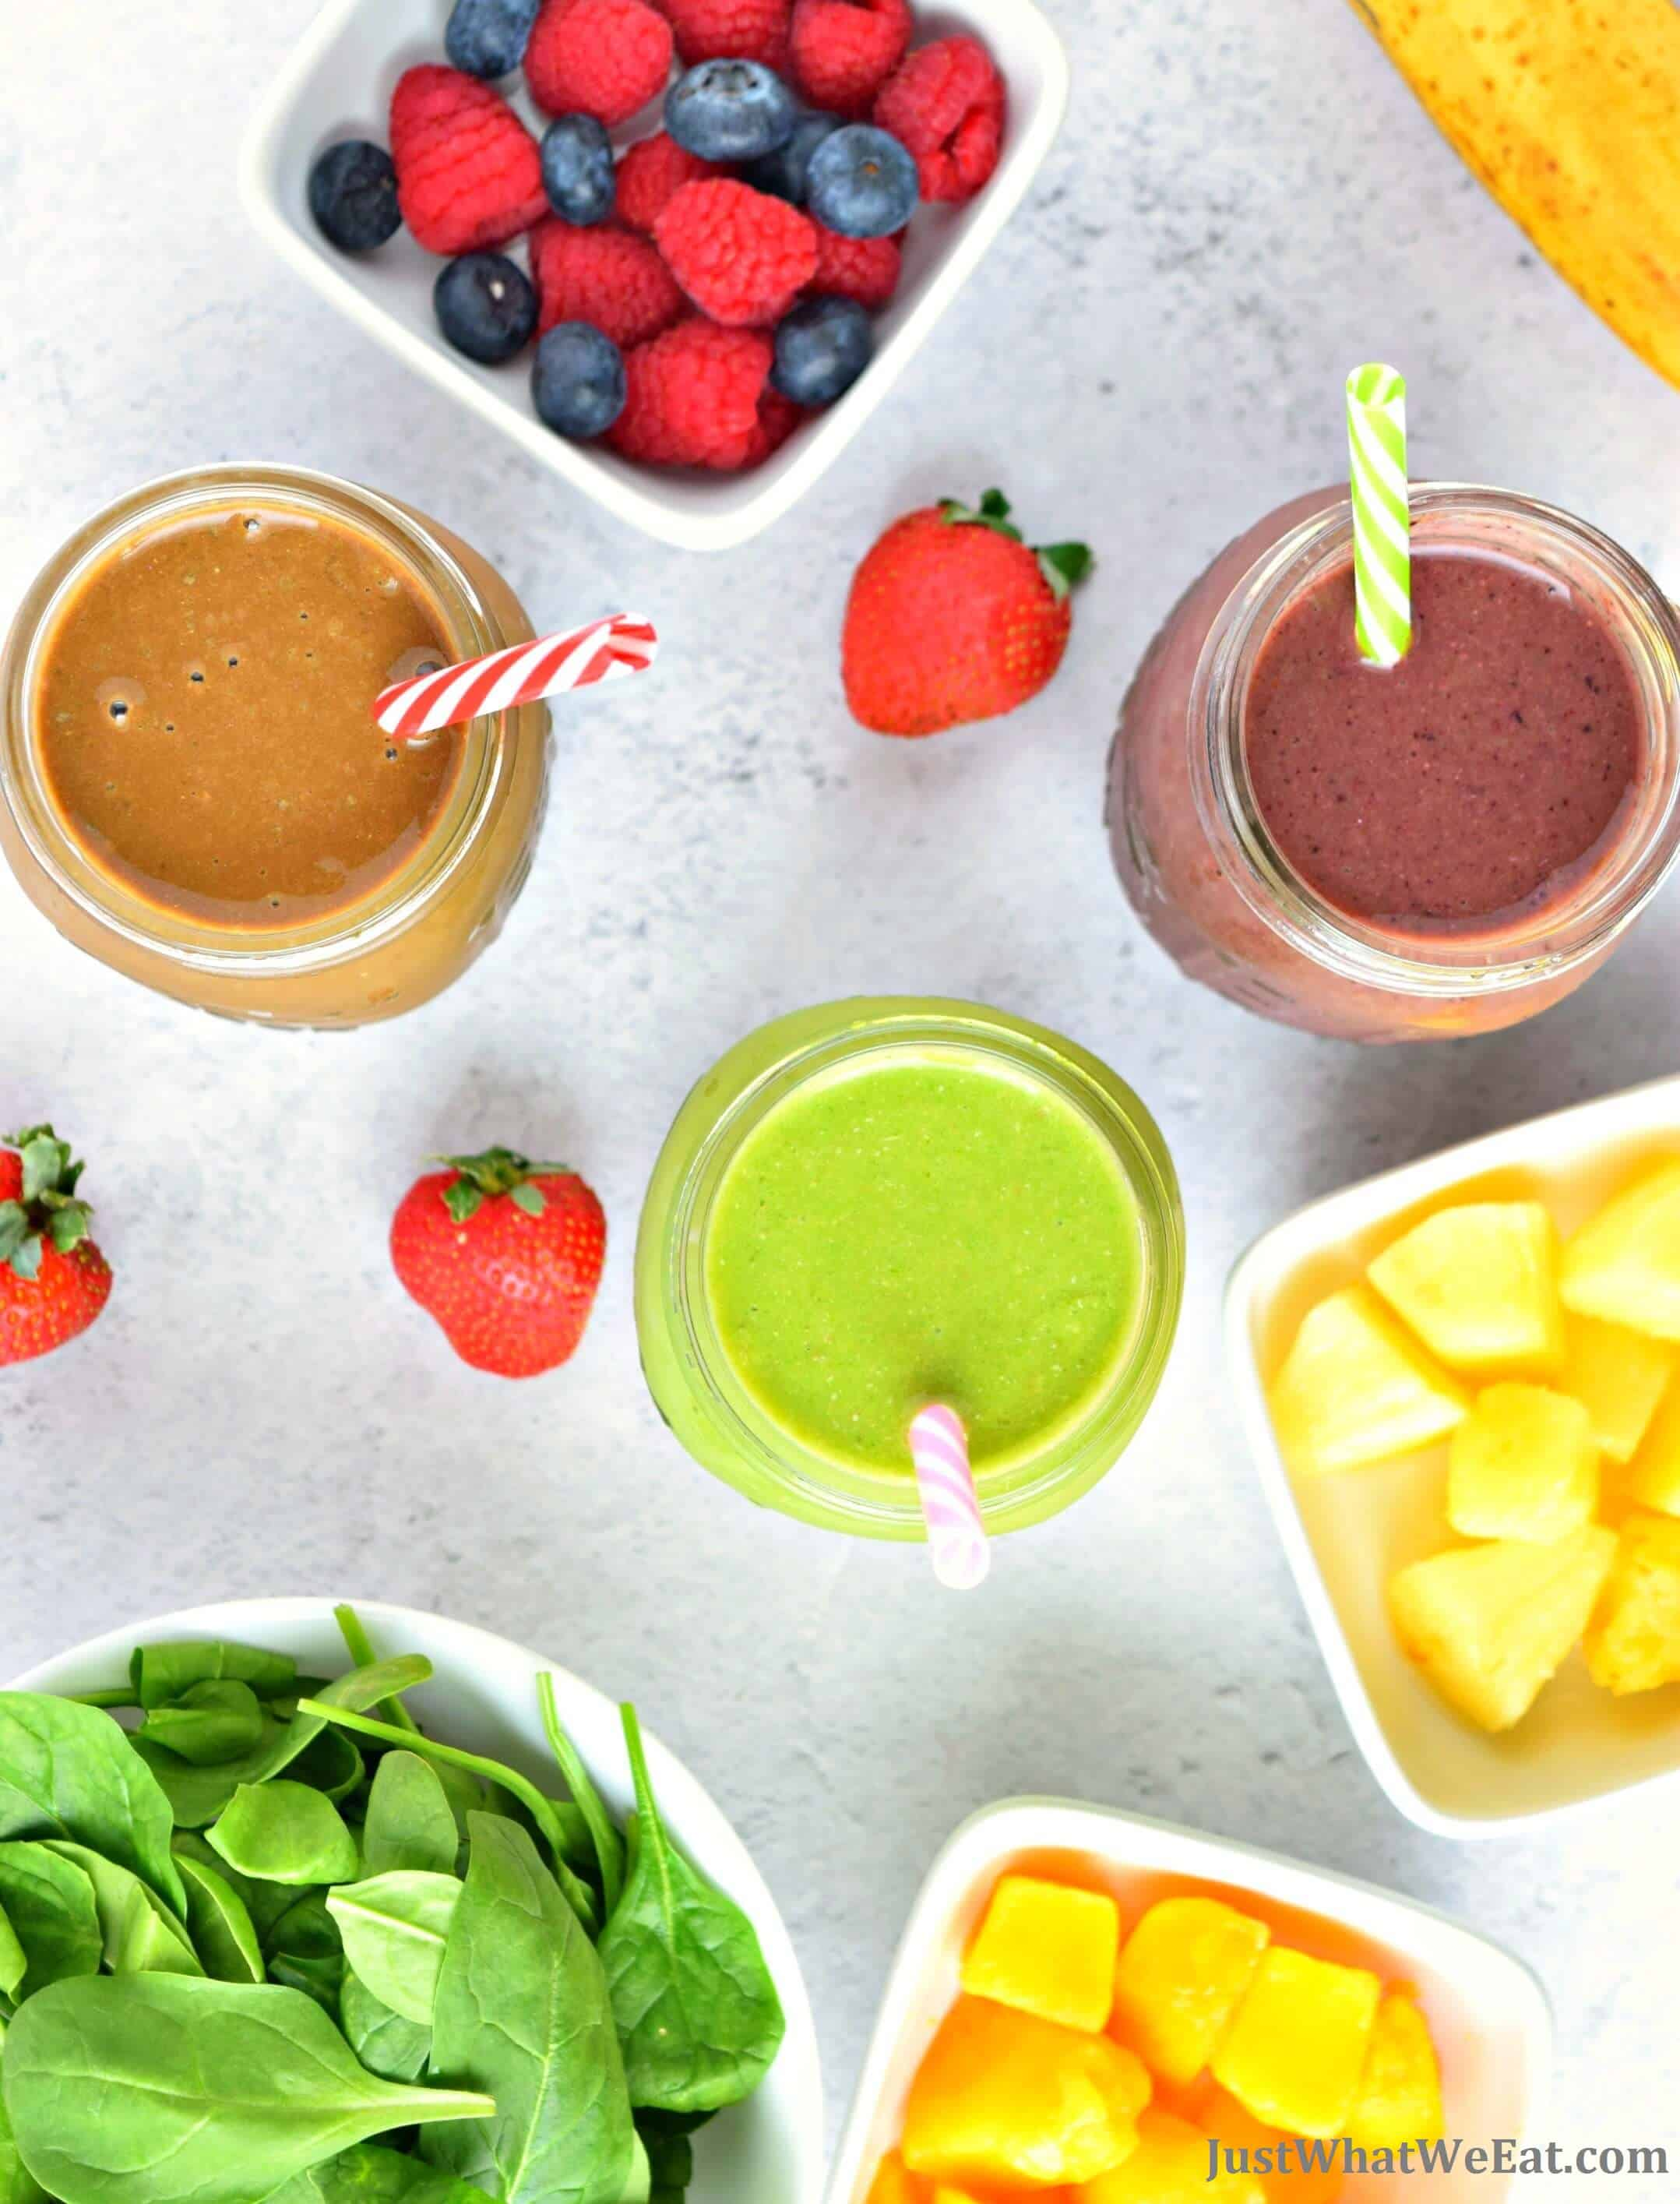 Healthy Smoothie Recipes - Gluten Free, Vegan, Dairy Free, Refined Sugar Free